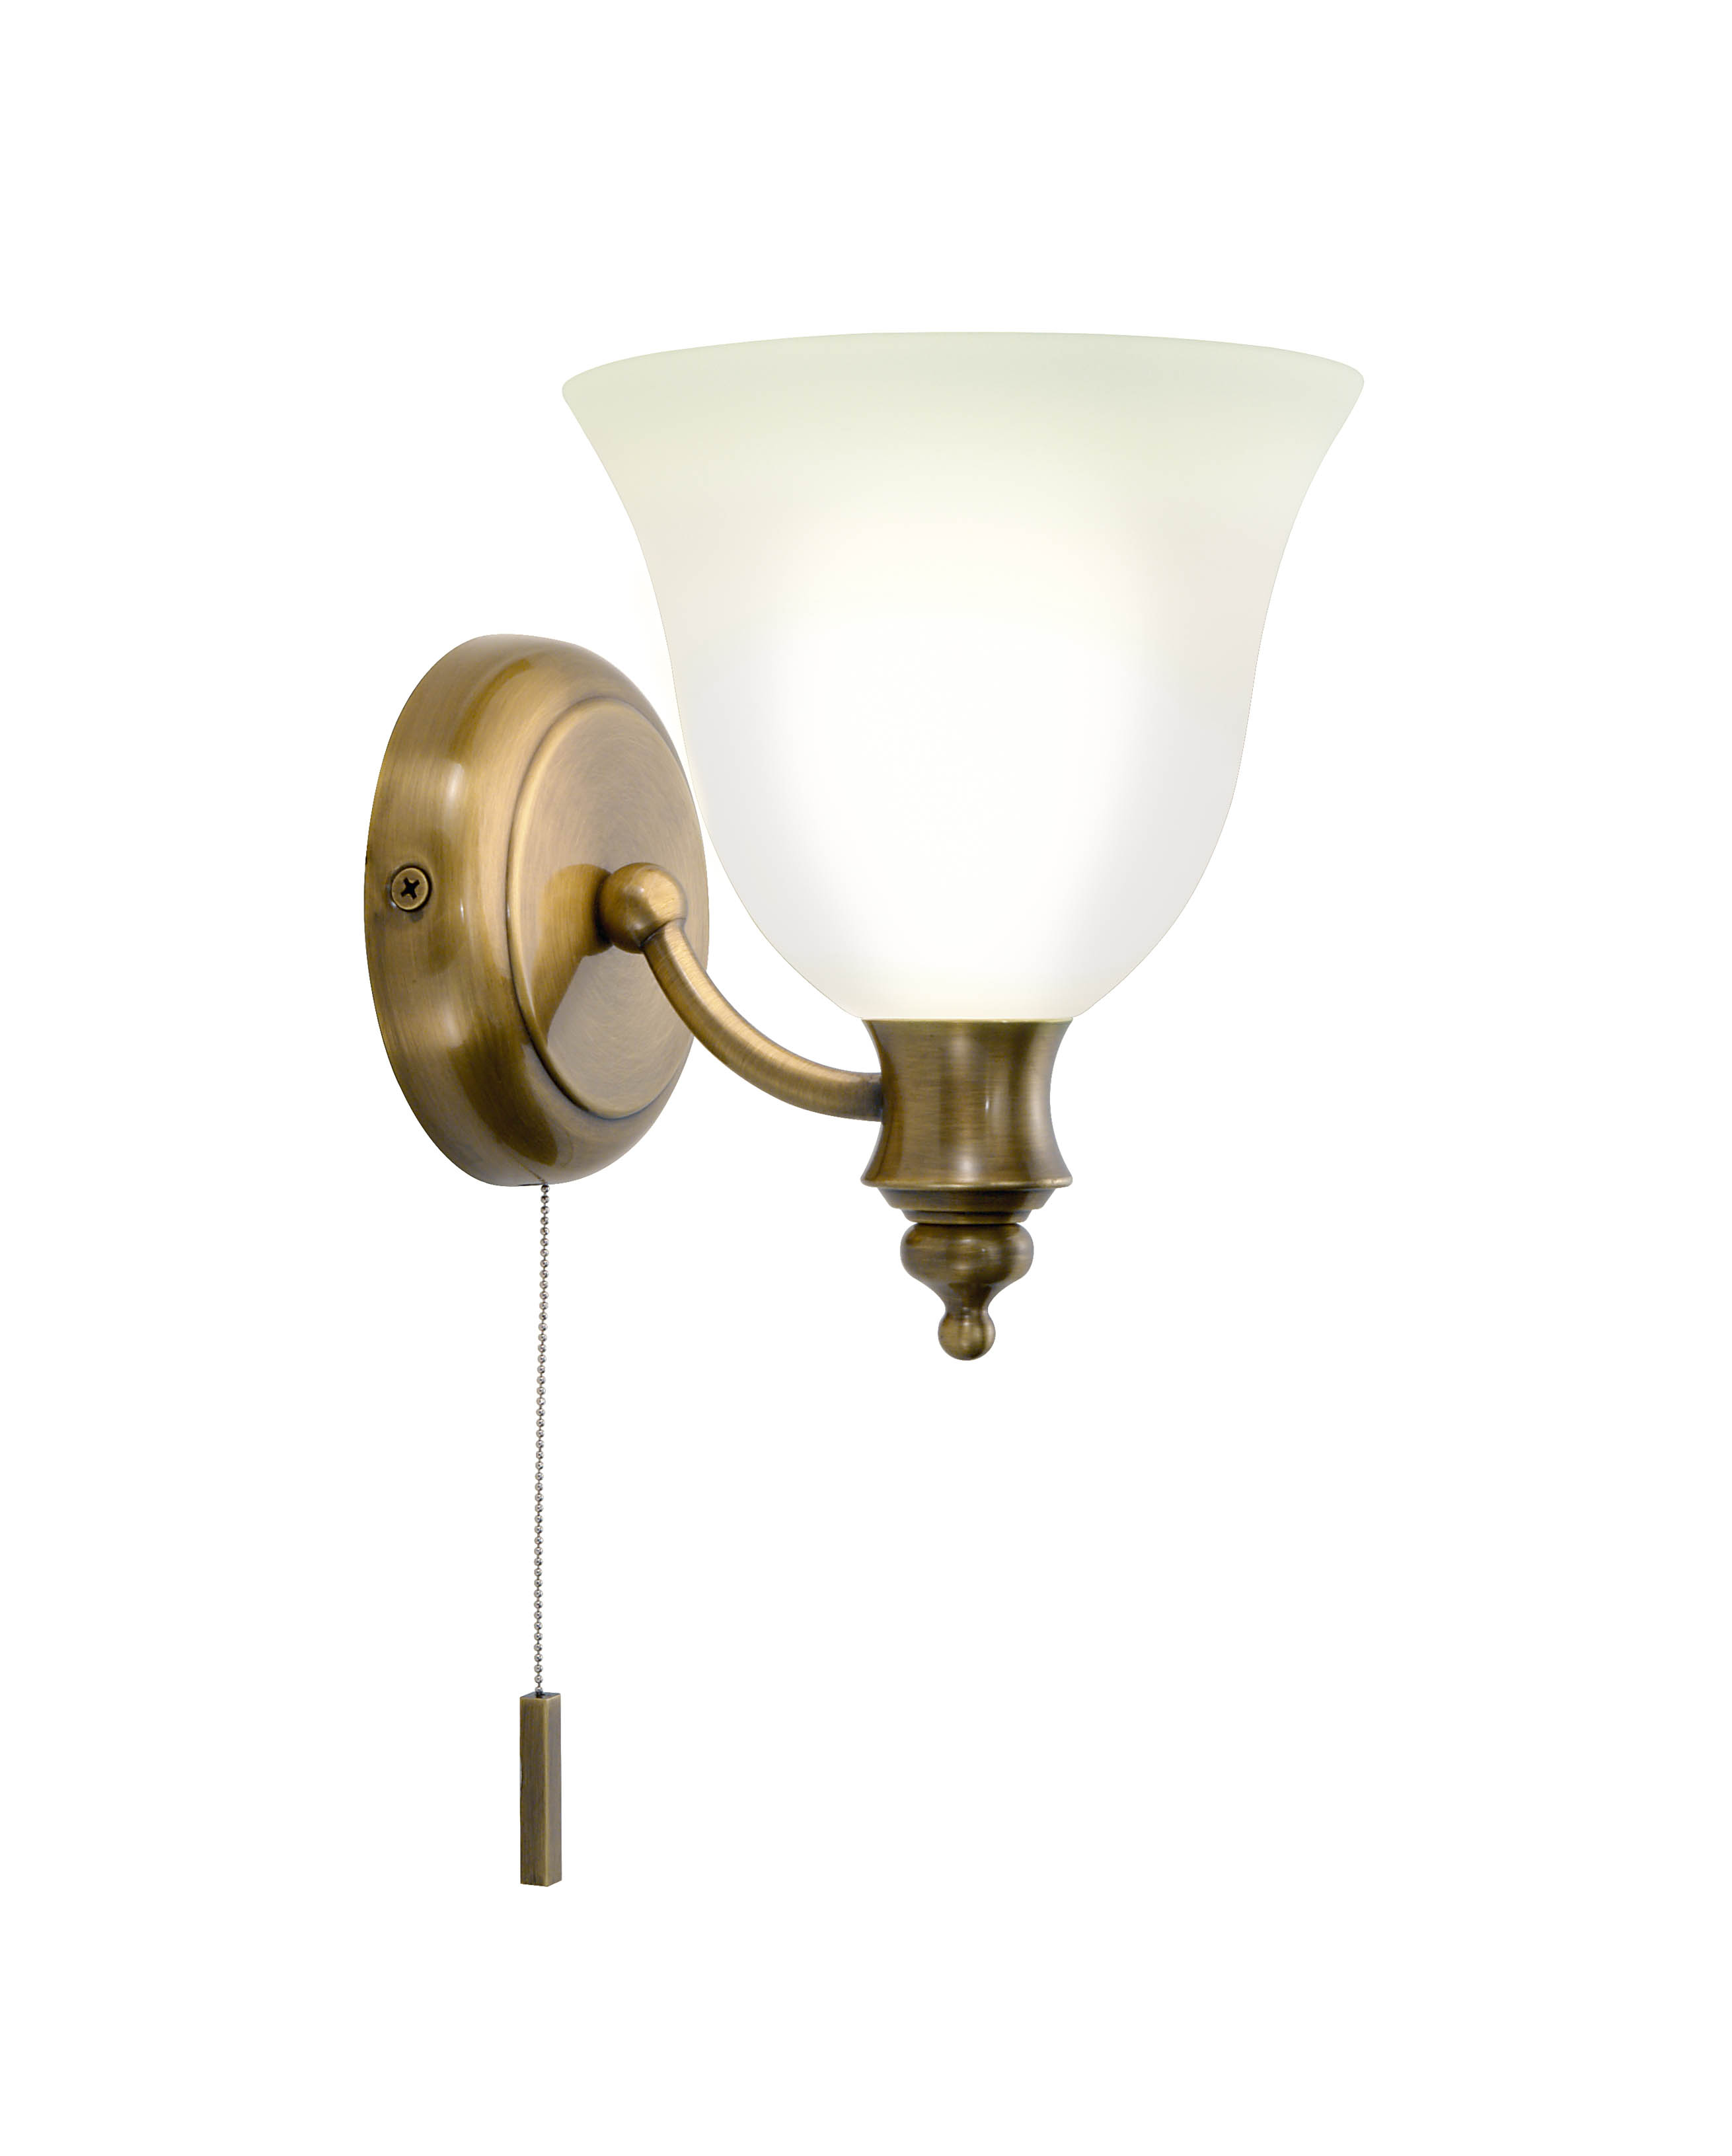 Oboe 1 Light Antique Brass Ip44 Double Insulated Wall